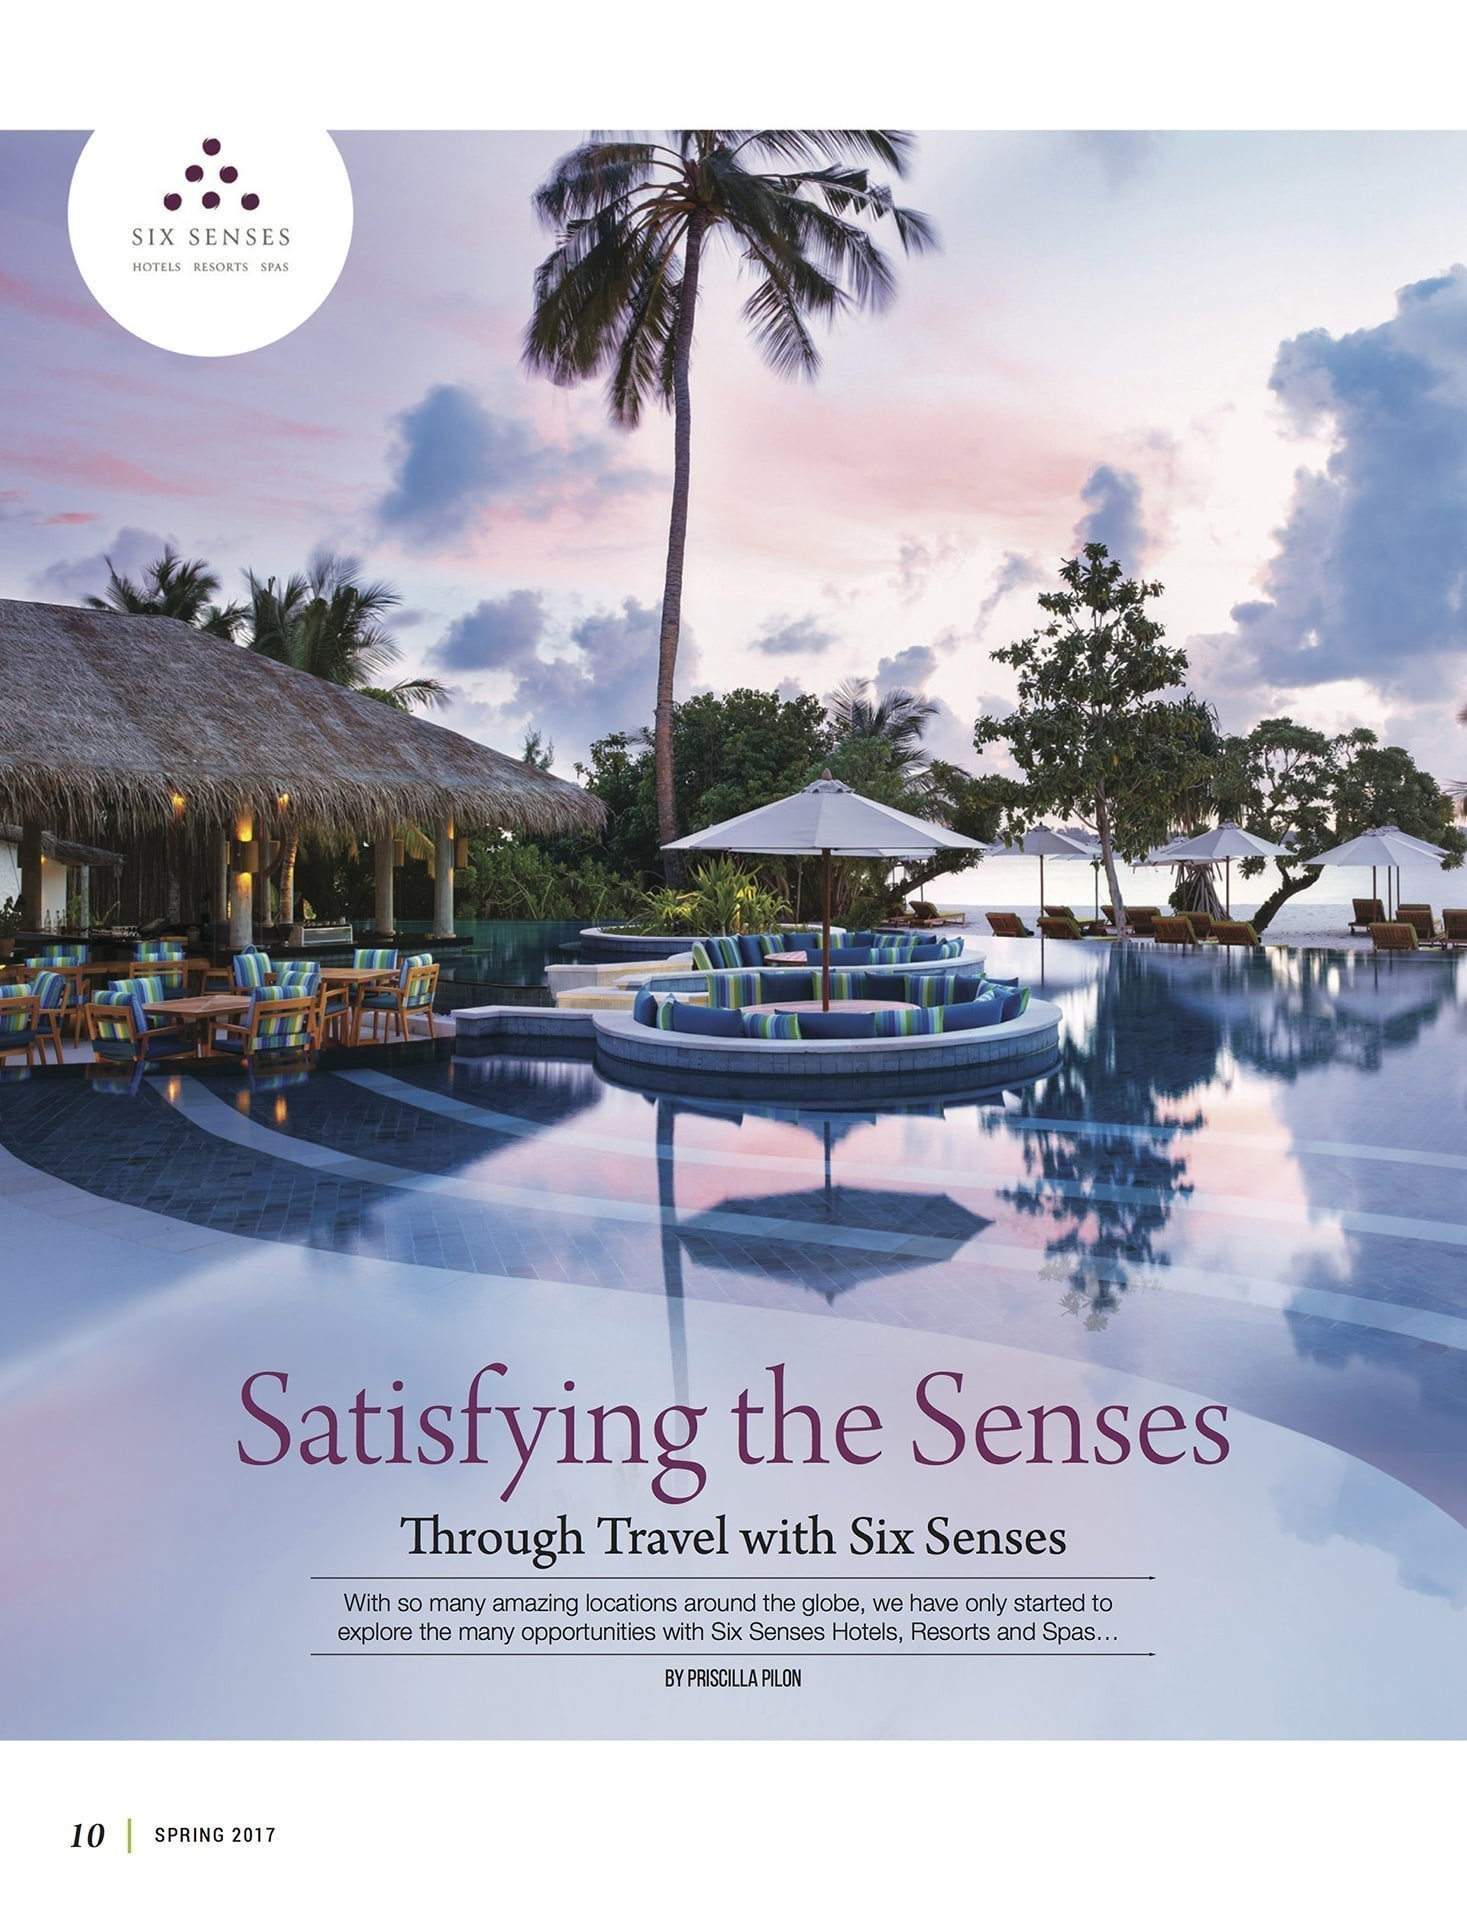 LuxeGetaways - Luxury Travel - Luxury Travel Magazine - Six Senses Hotels and Resorts - Spa - Wellness